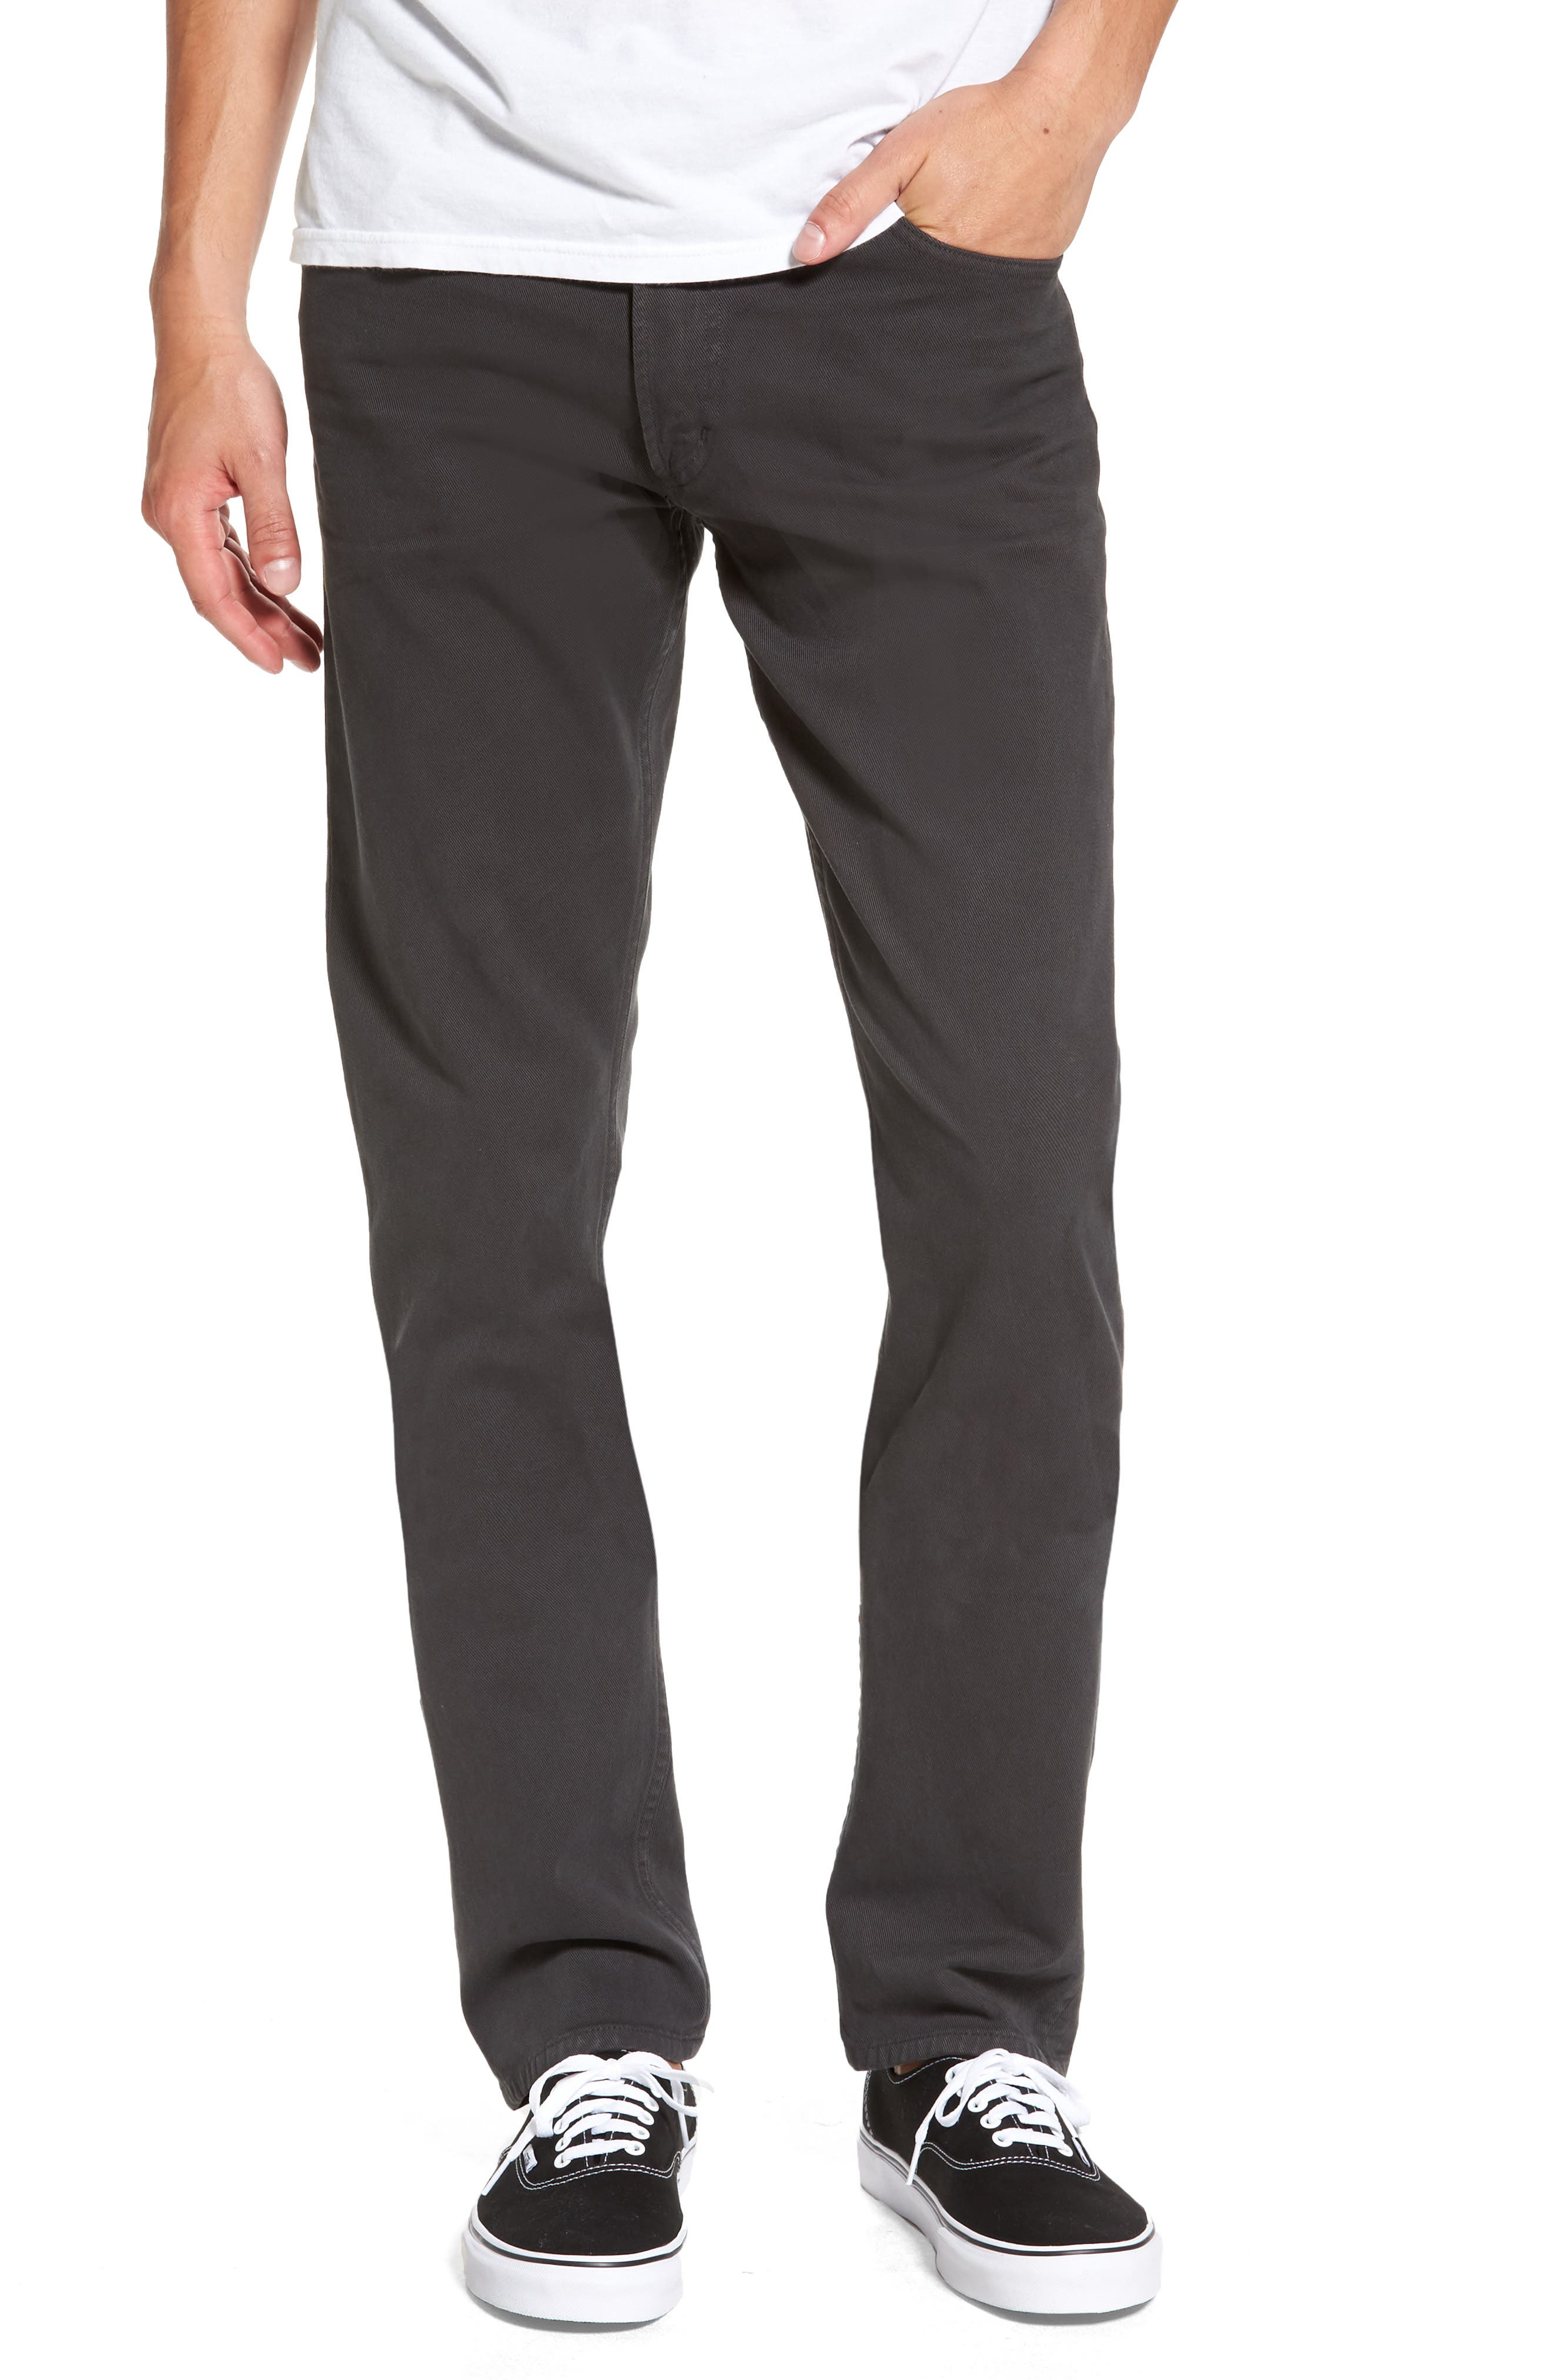 Citizens of Humanity Bowery Slim Fit Jeans (Dark Charcoal)